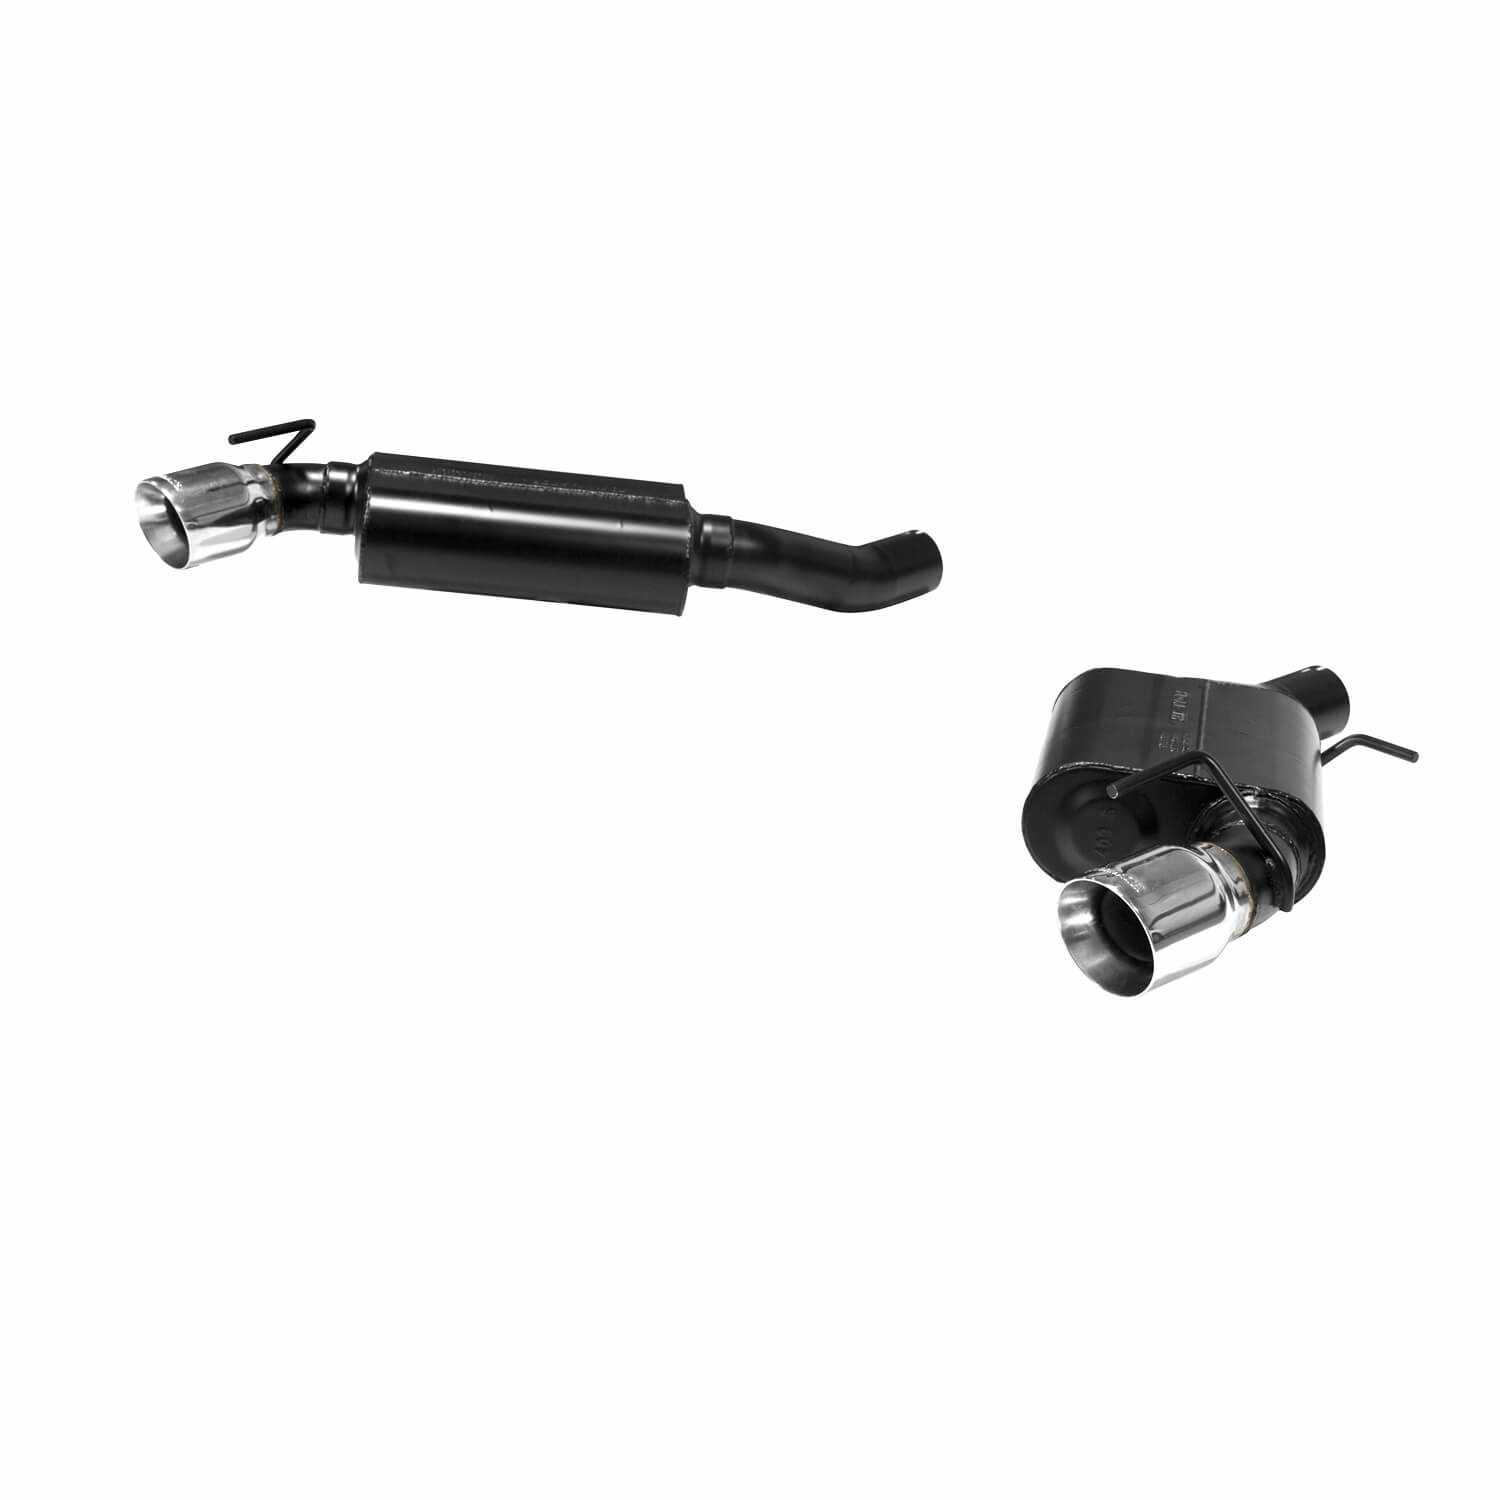 817744 Flowmaster American Thunder Axle Back Exhaust System